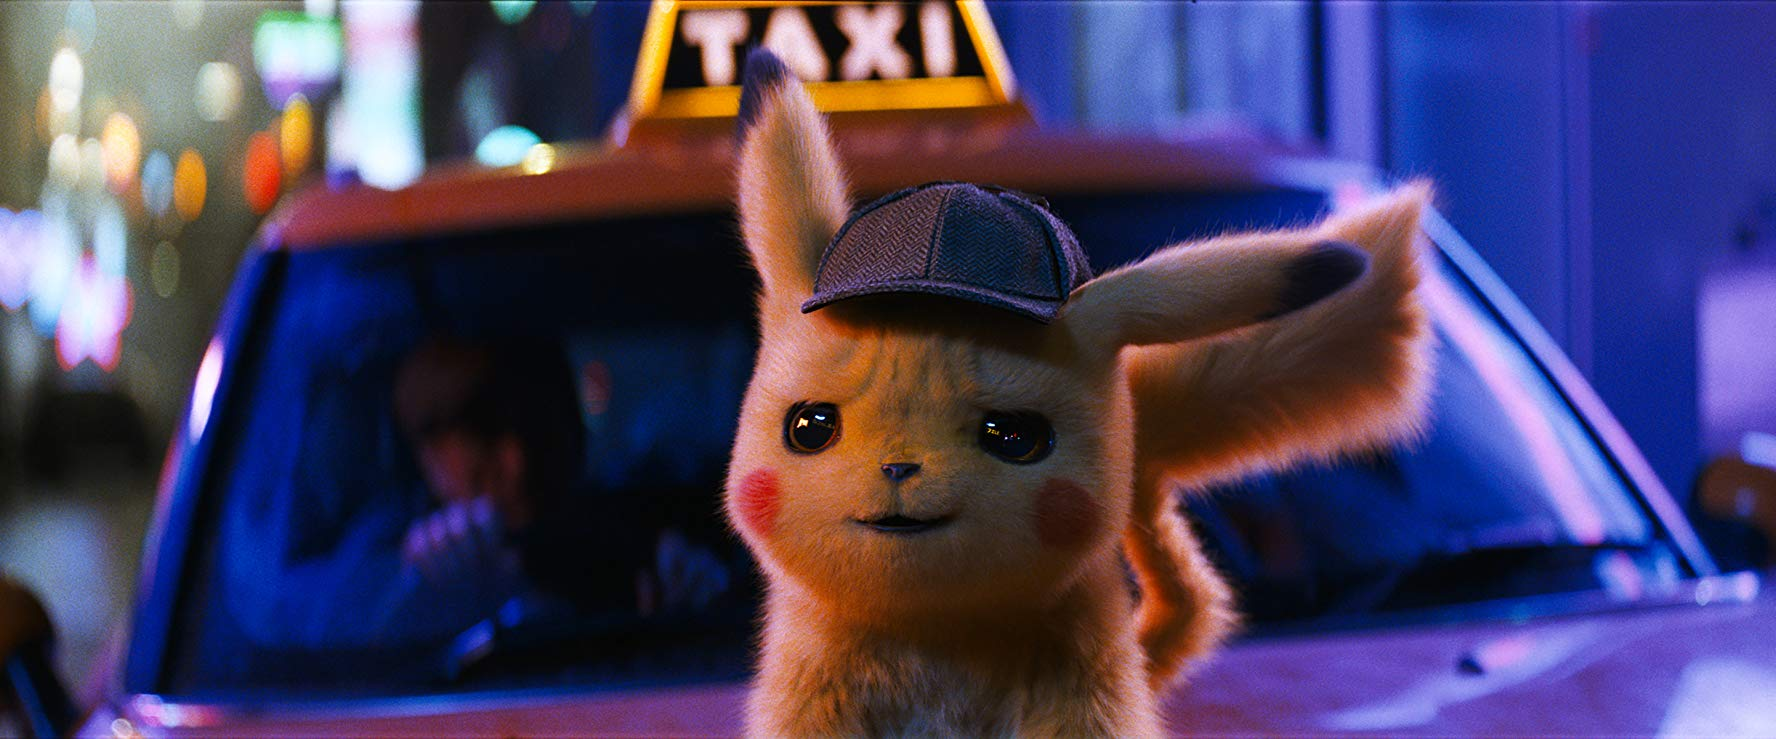 Pokmon Detective Pikachu - le film d'animation et d'action en direct